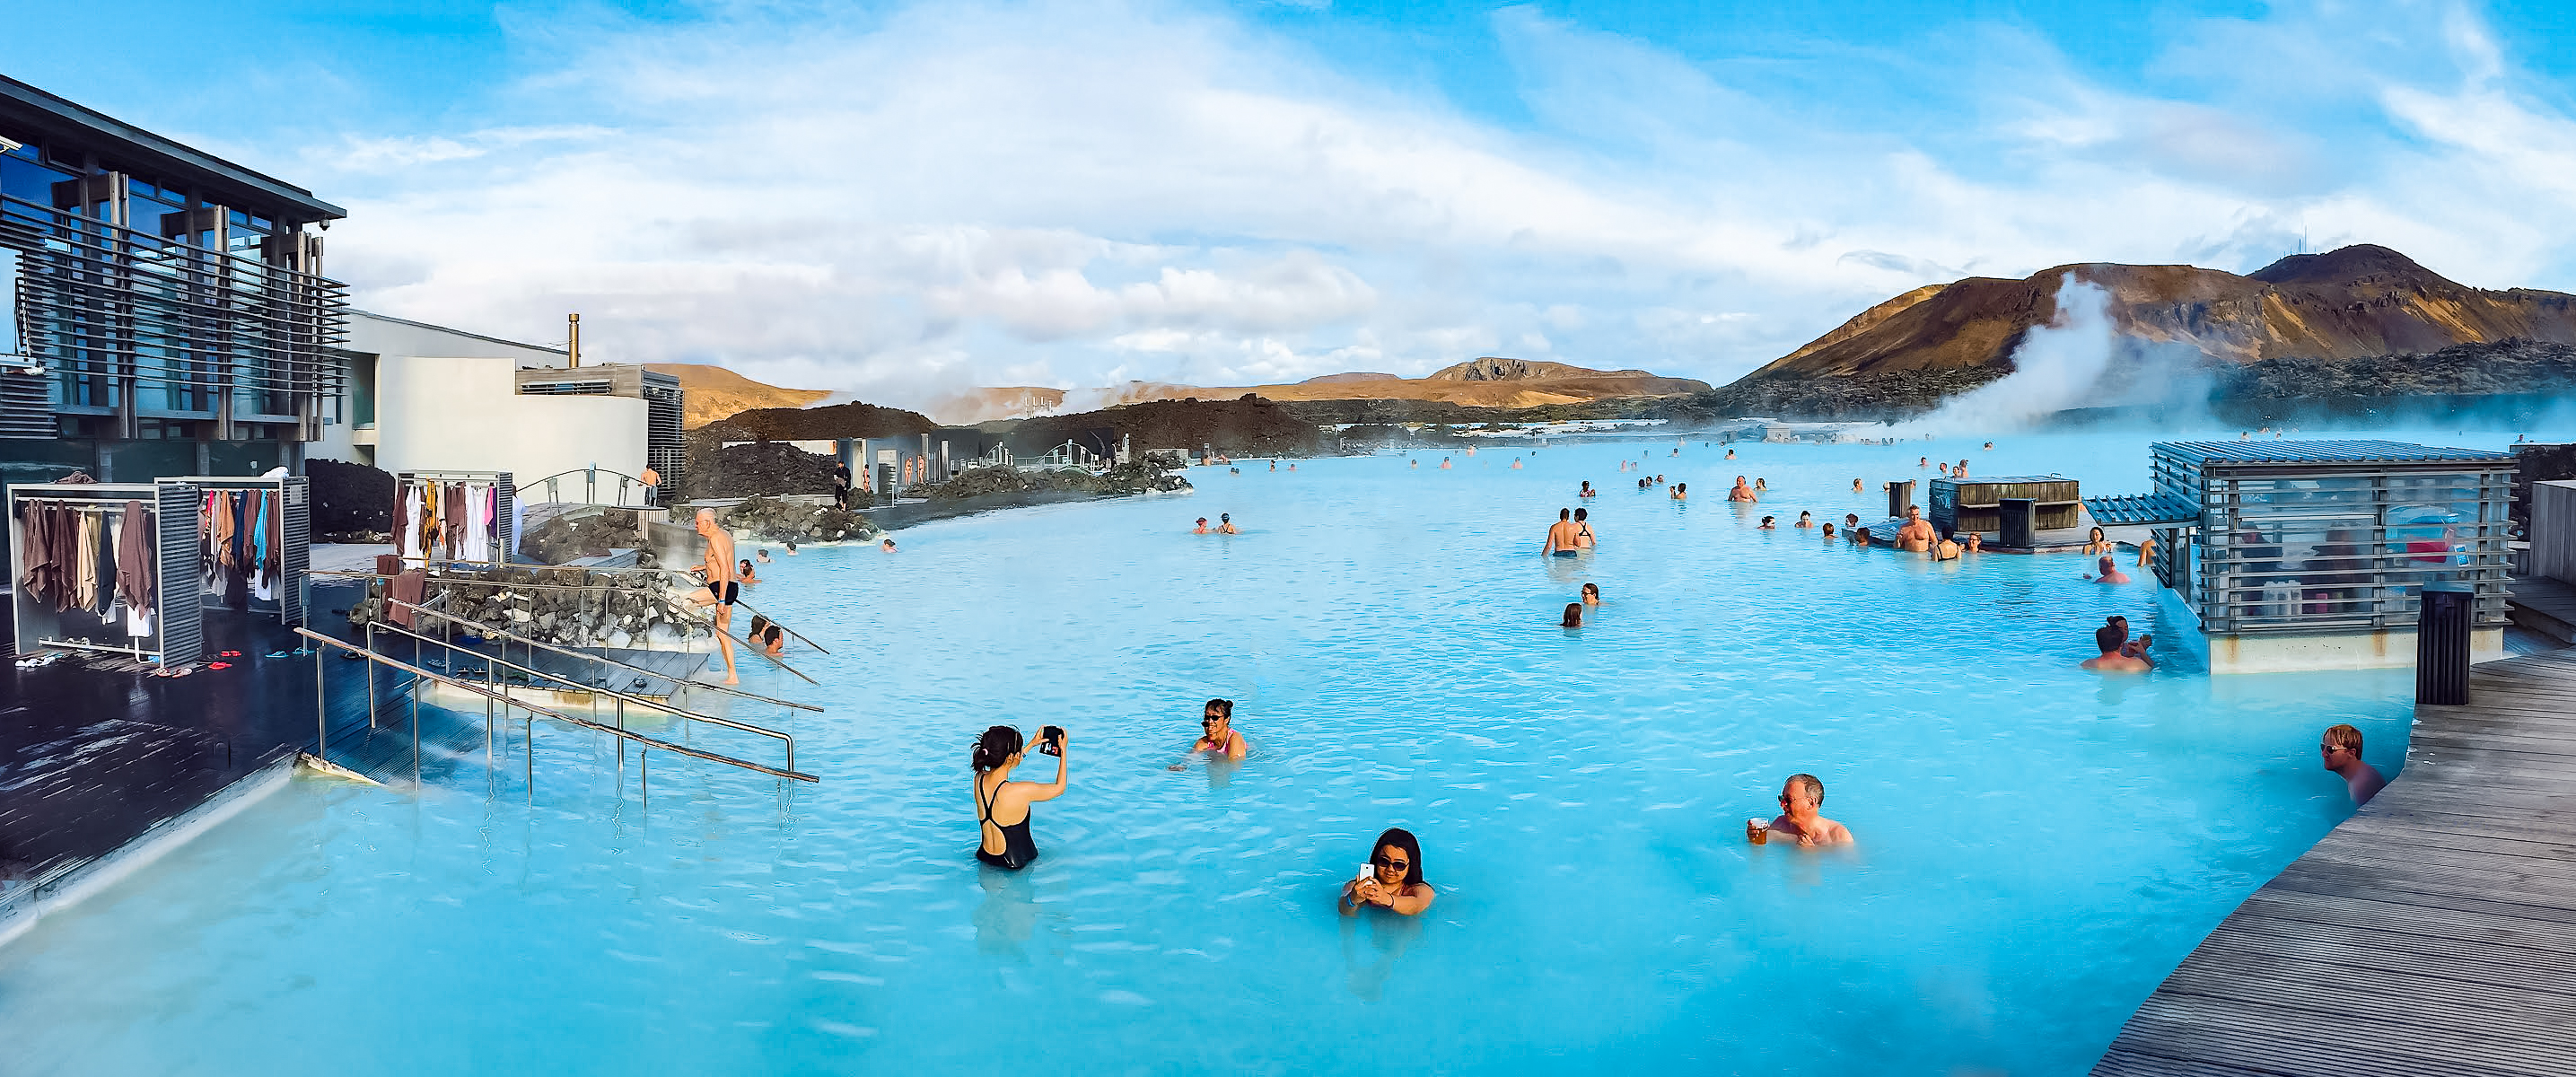 Best-halal-travel-blogger-Iceland-guide-Blue-Lagoon